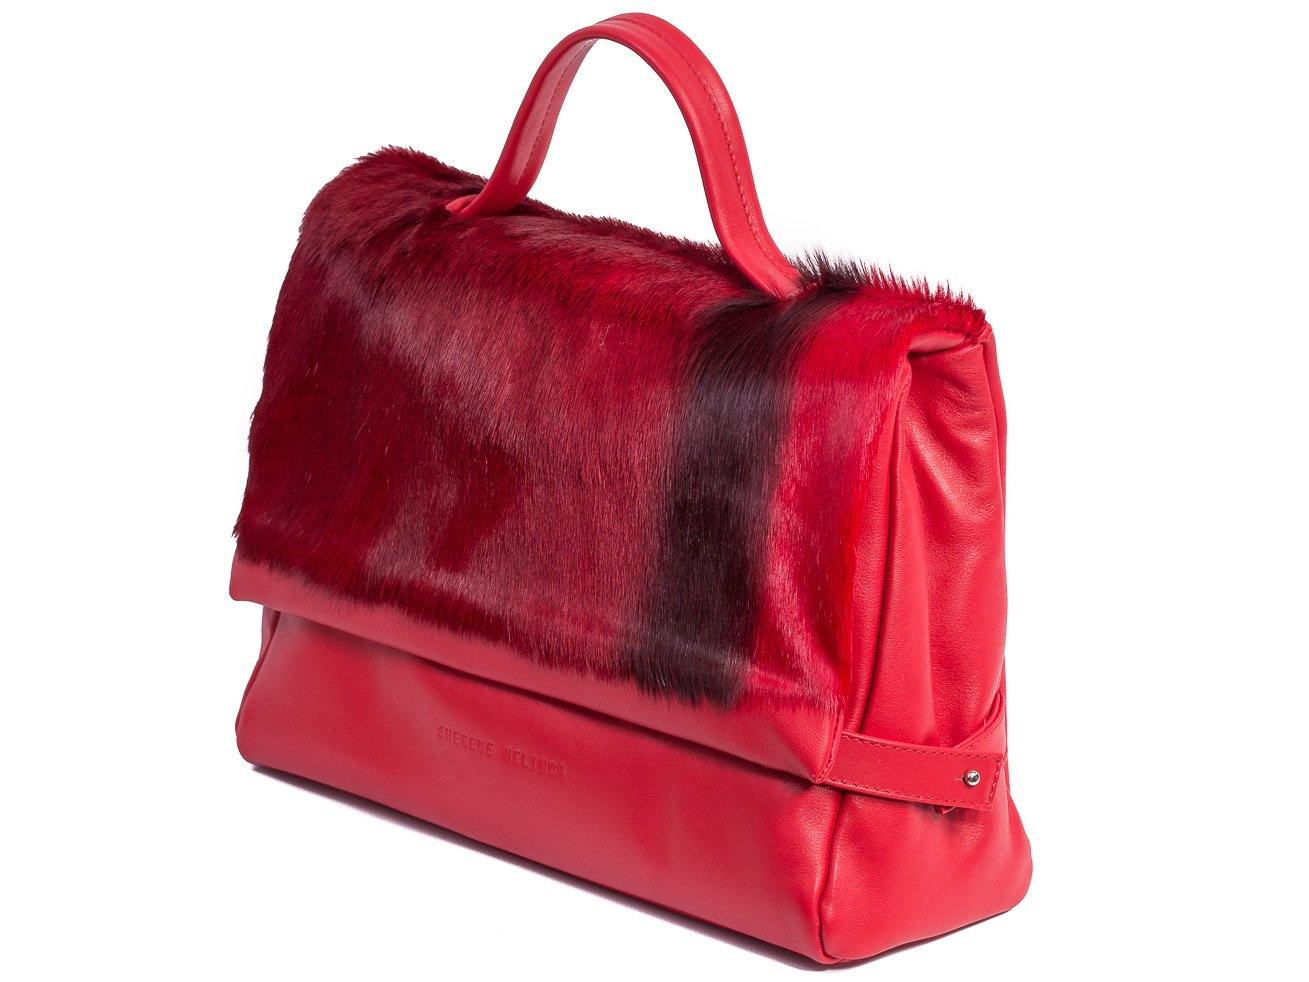 sherene melinda springbok hair-on-hide red leather smith tote bag stripe front strap